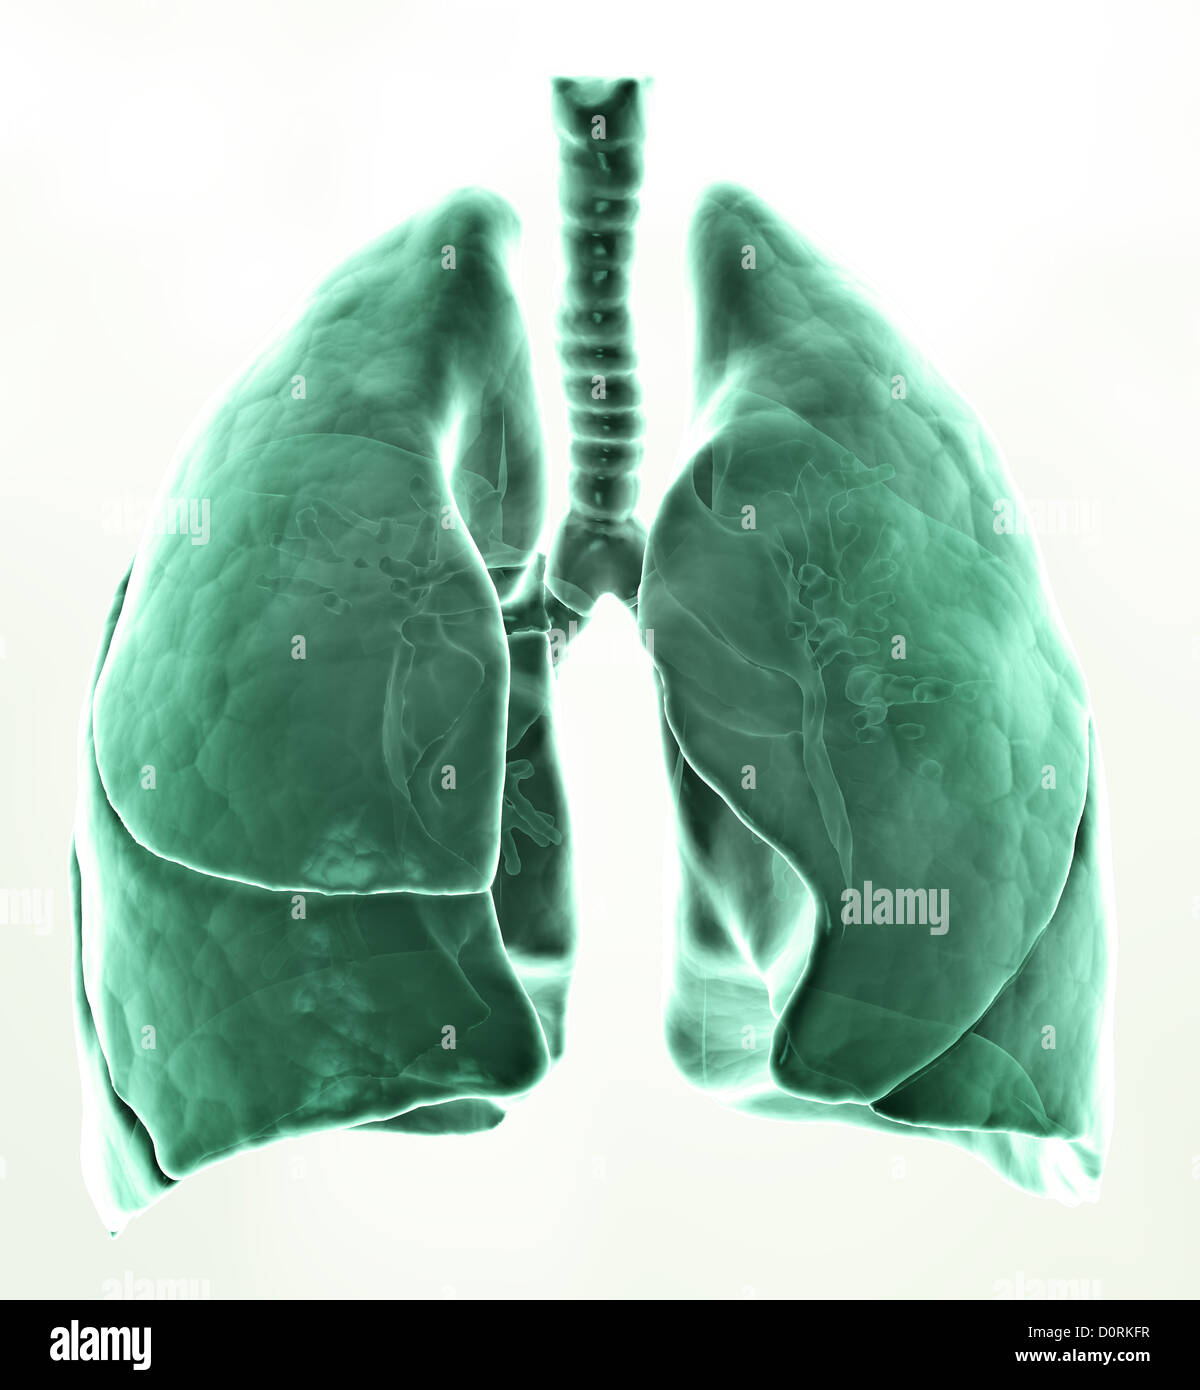 3D medical illustration - lungs - Stock Image